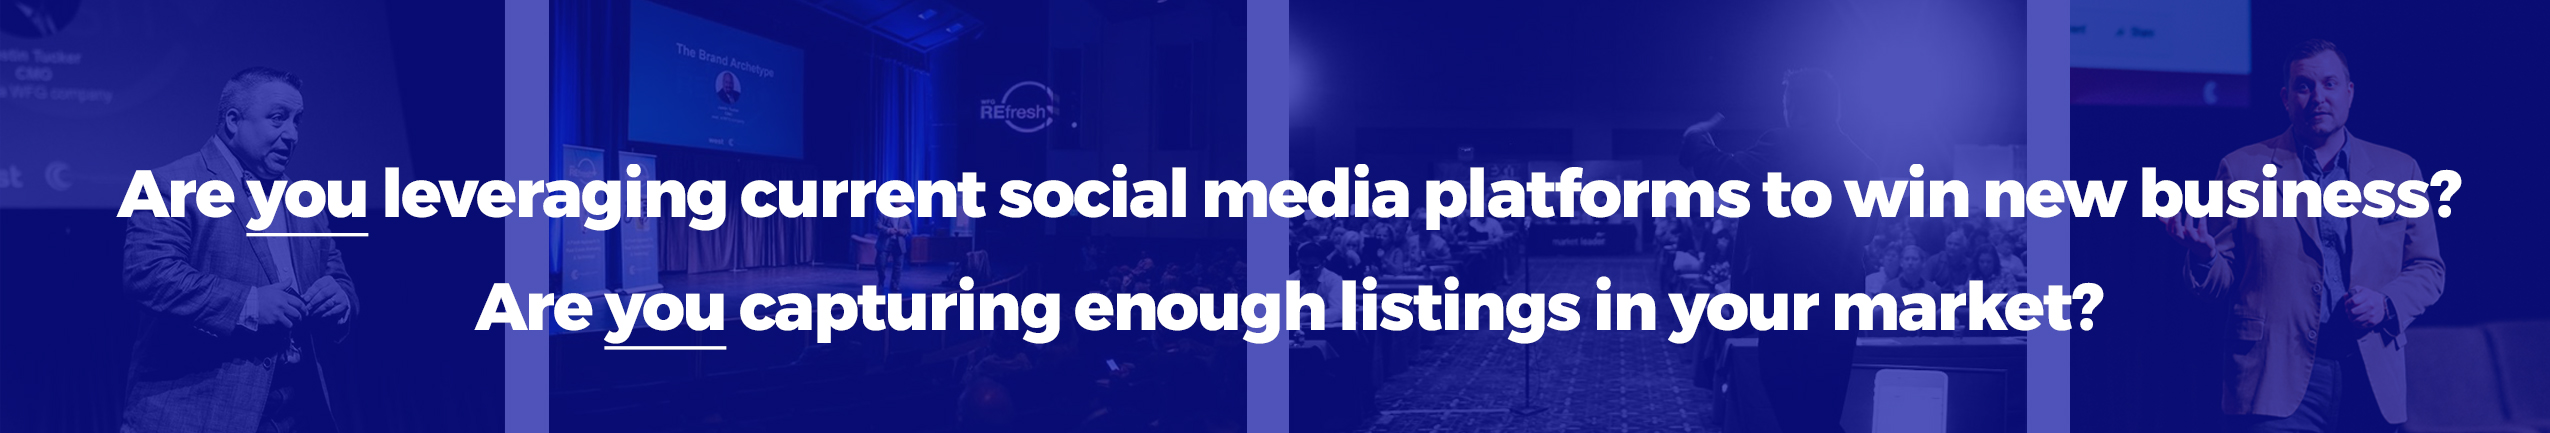 Are you leveraging current social media platforms to win new business?   Are you capturing enough listings in your market place?